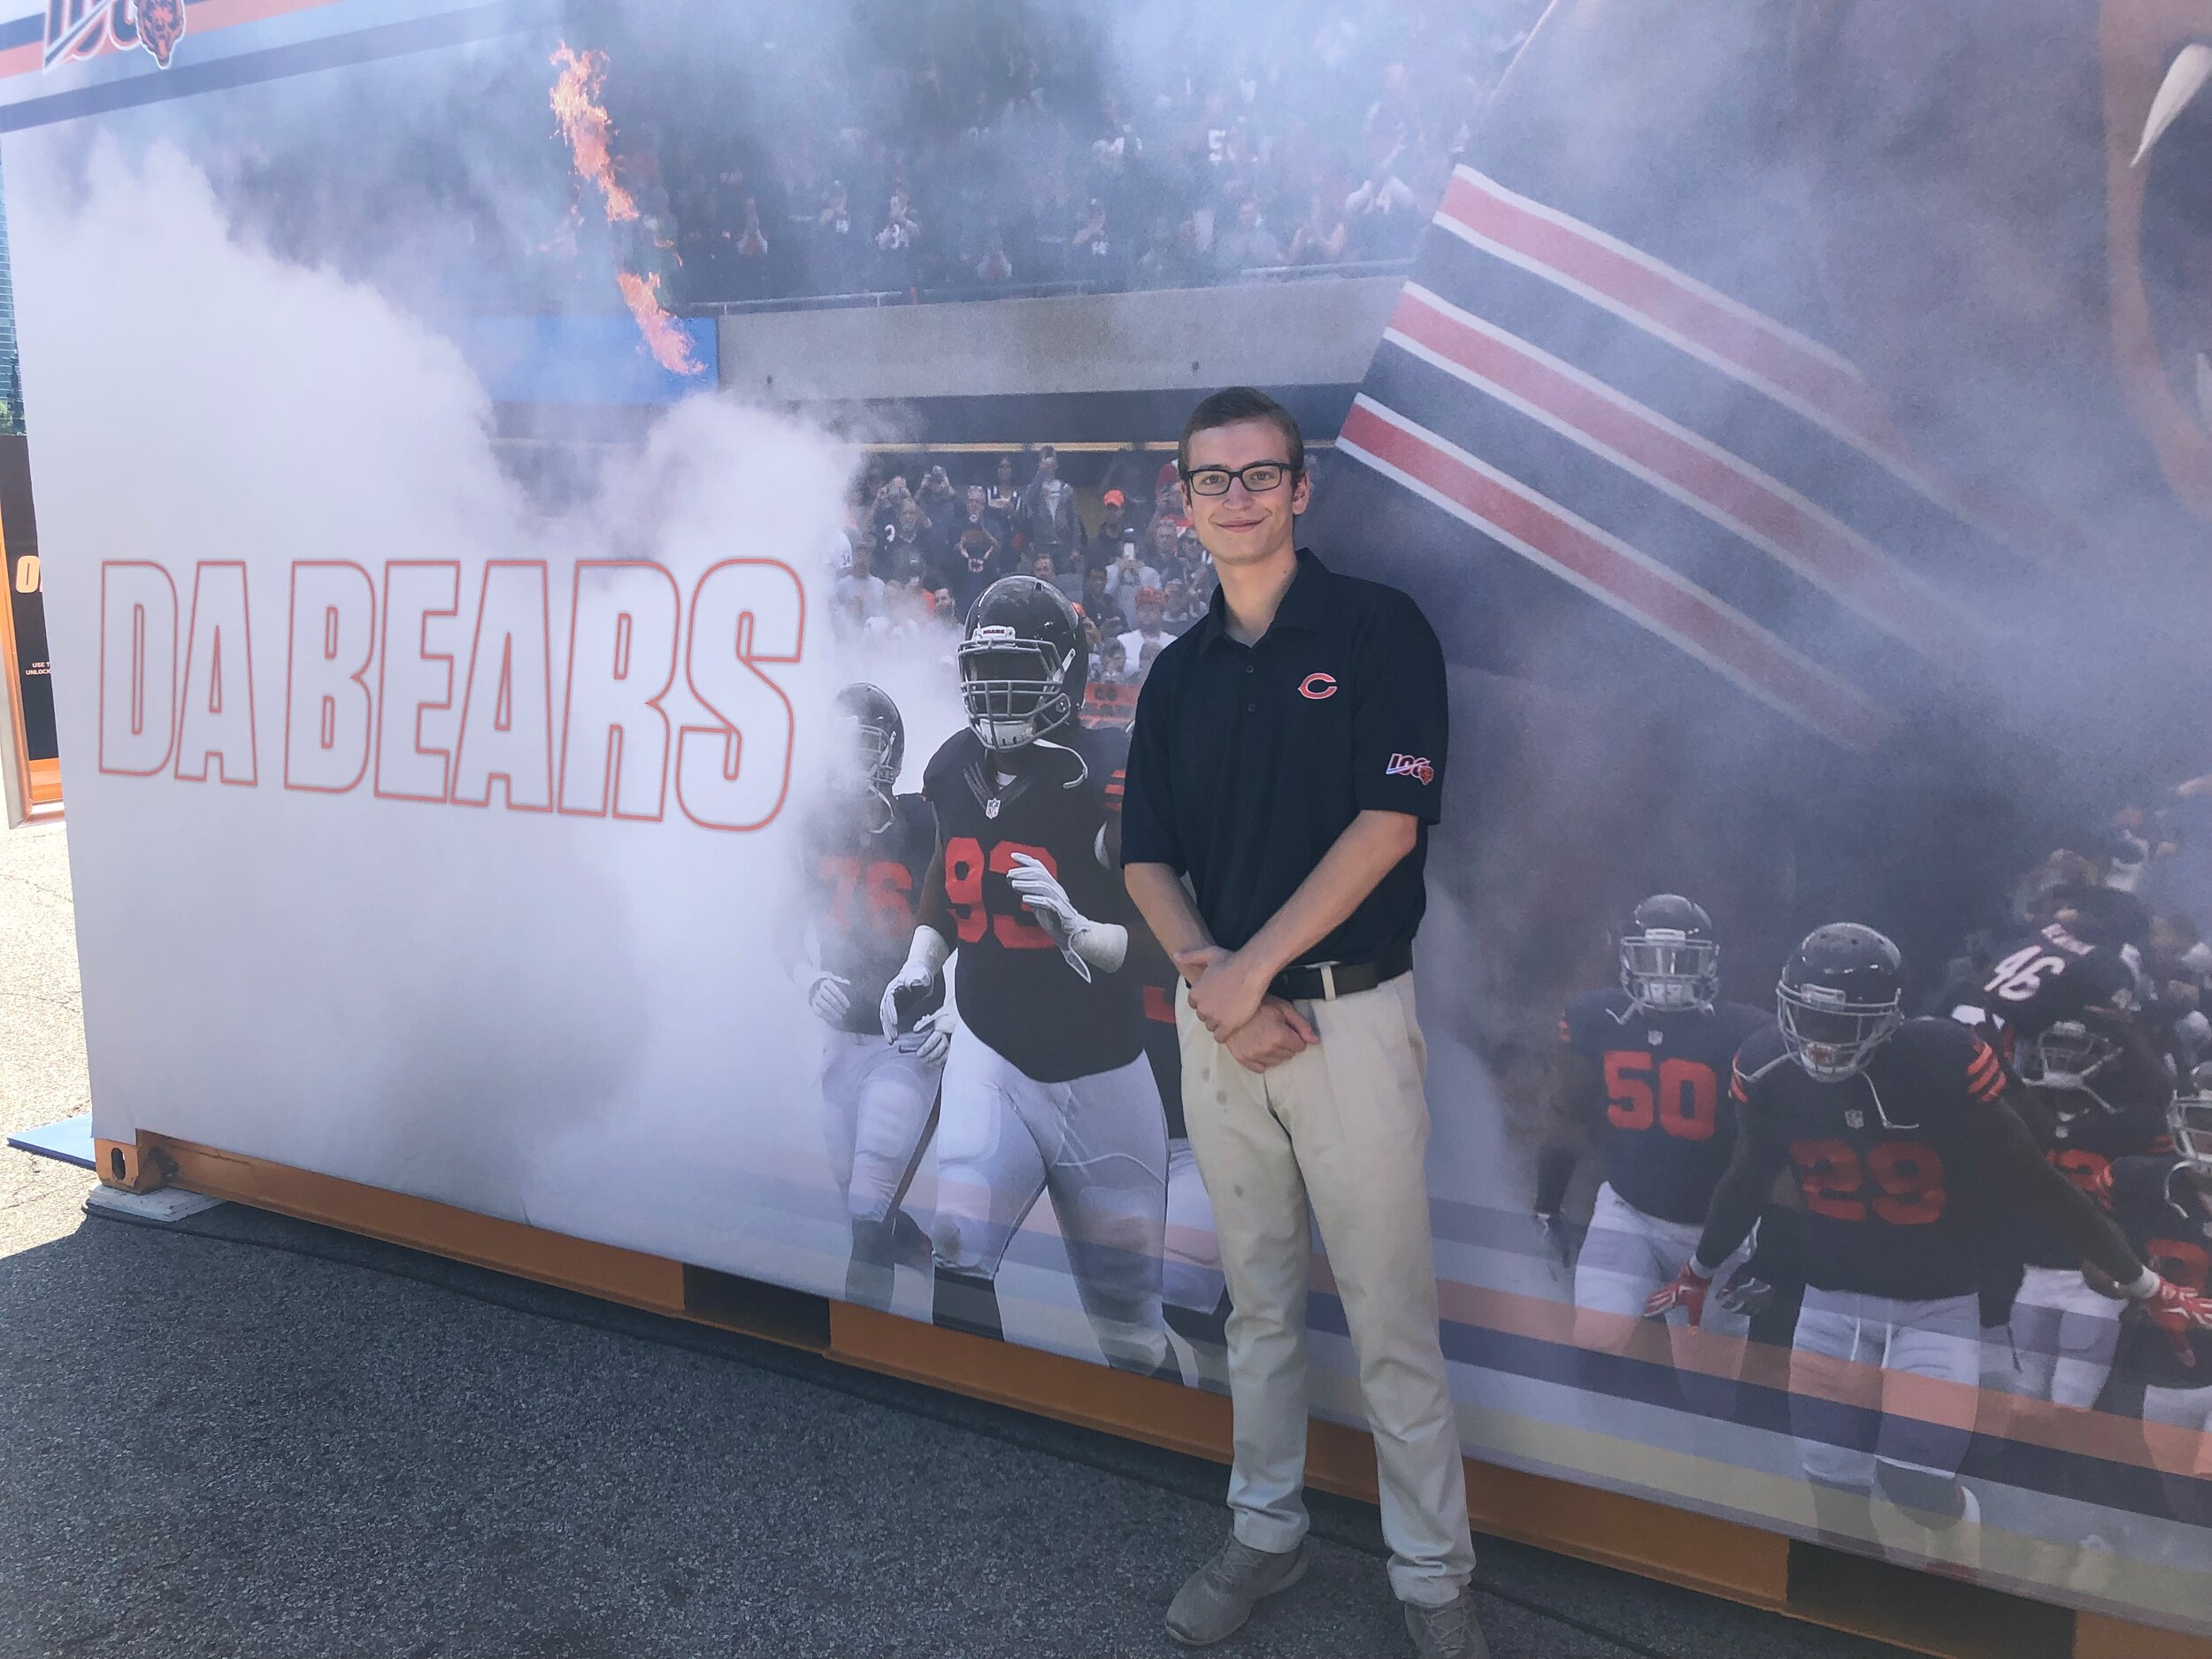 Dressed in game day work attire, Sean poses for a pic at Soldier Field, home of the Chicago Bears